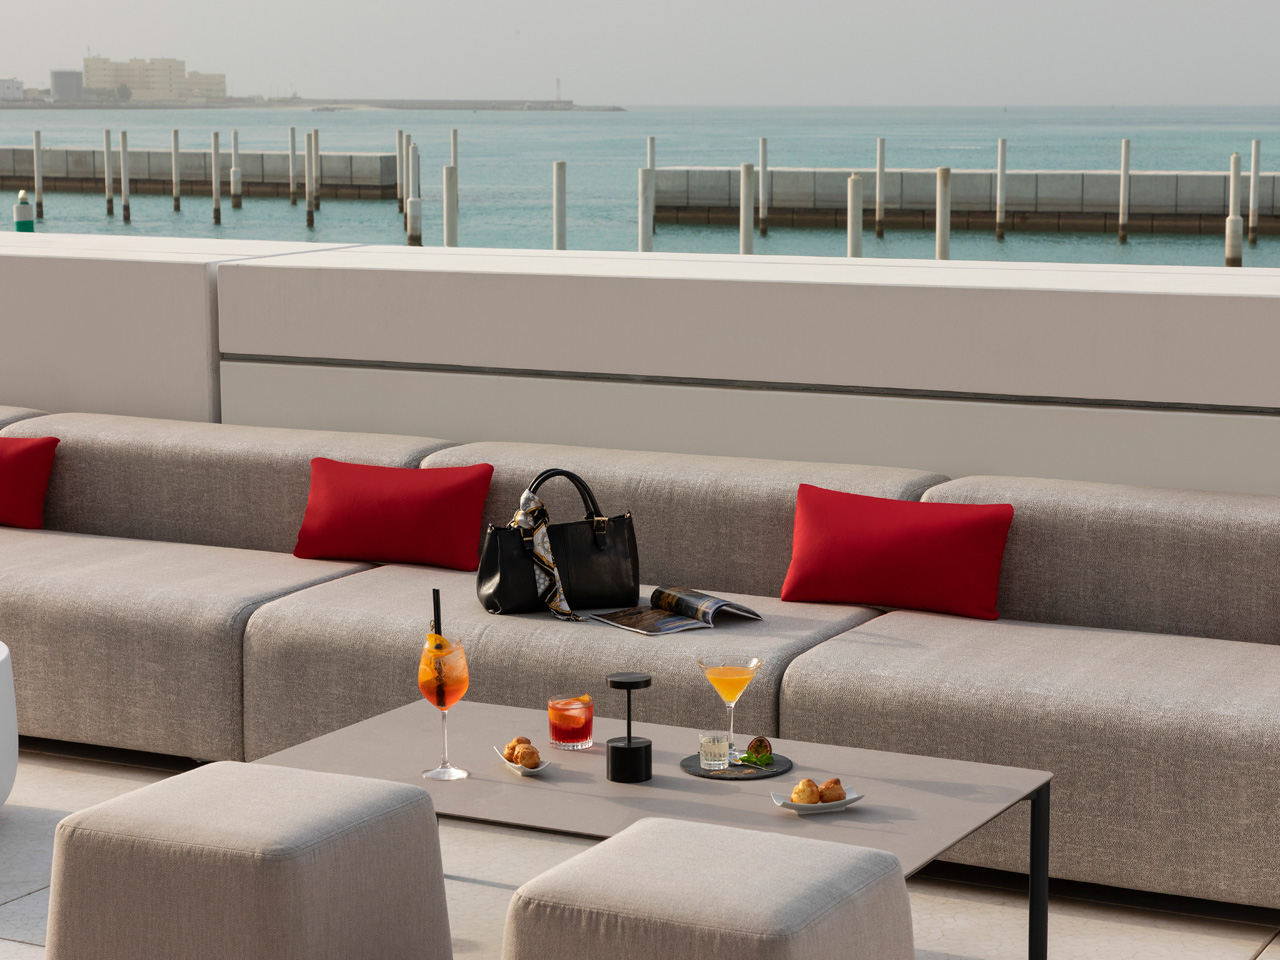 Fouquet Louvre Abu Dhabi outdoor seating